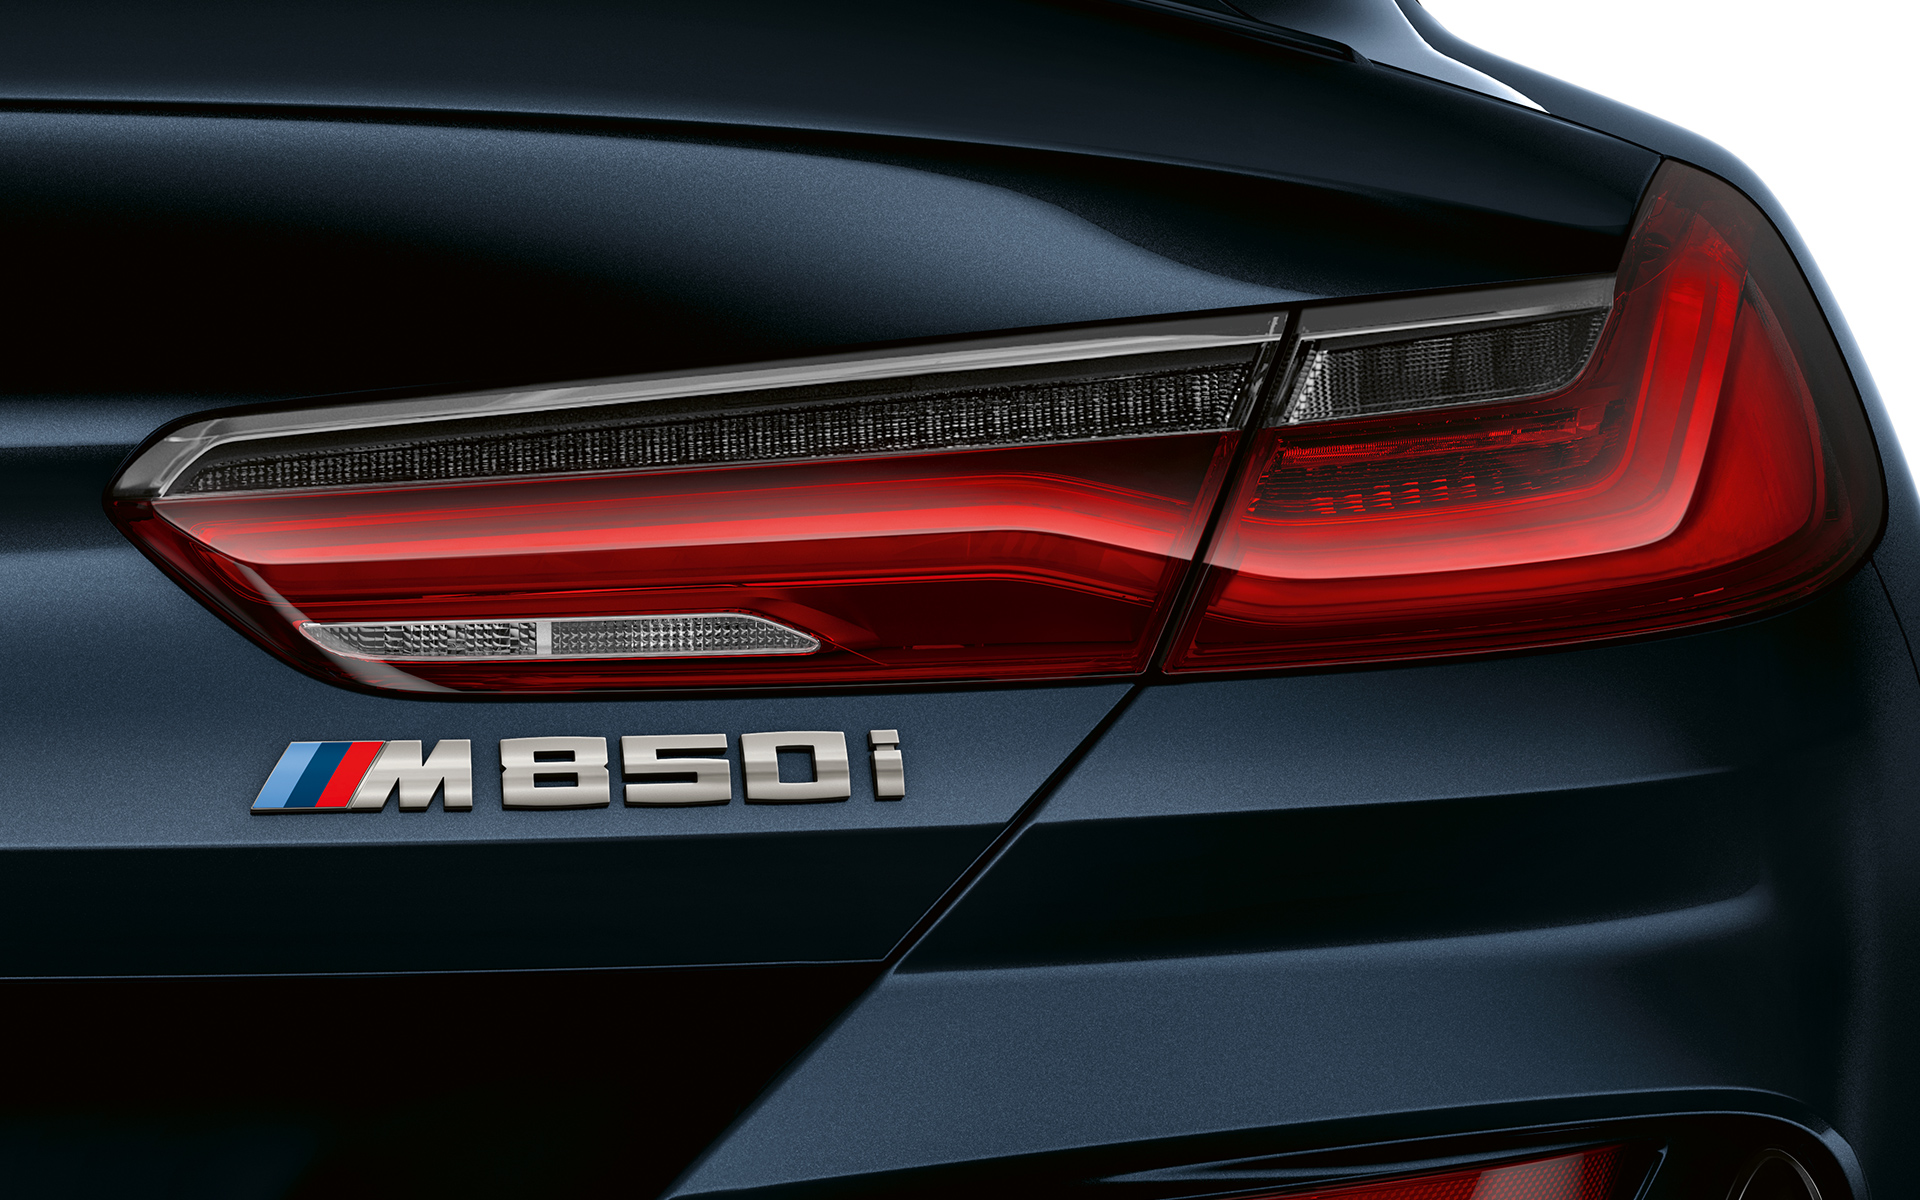 Close-up of the M850i emblem on the rear.